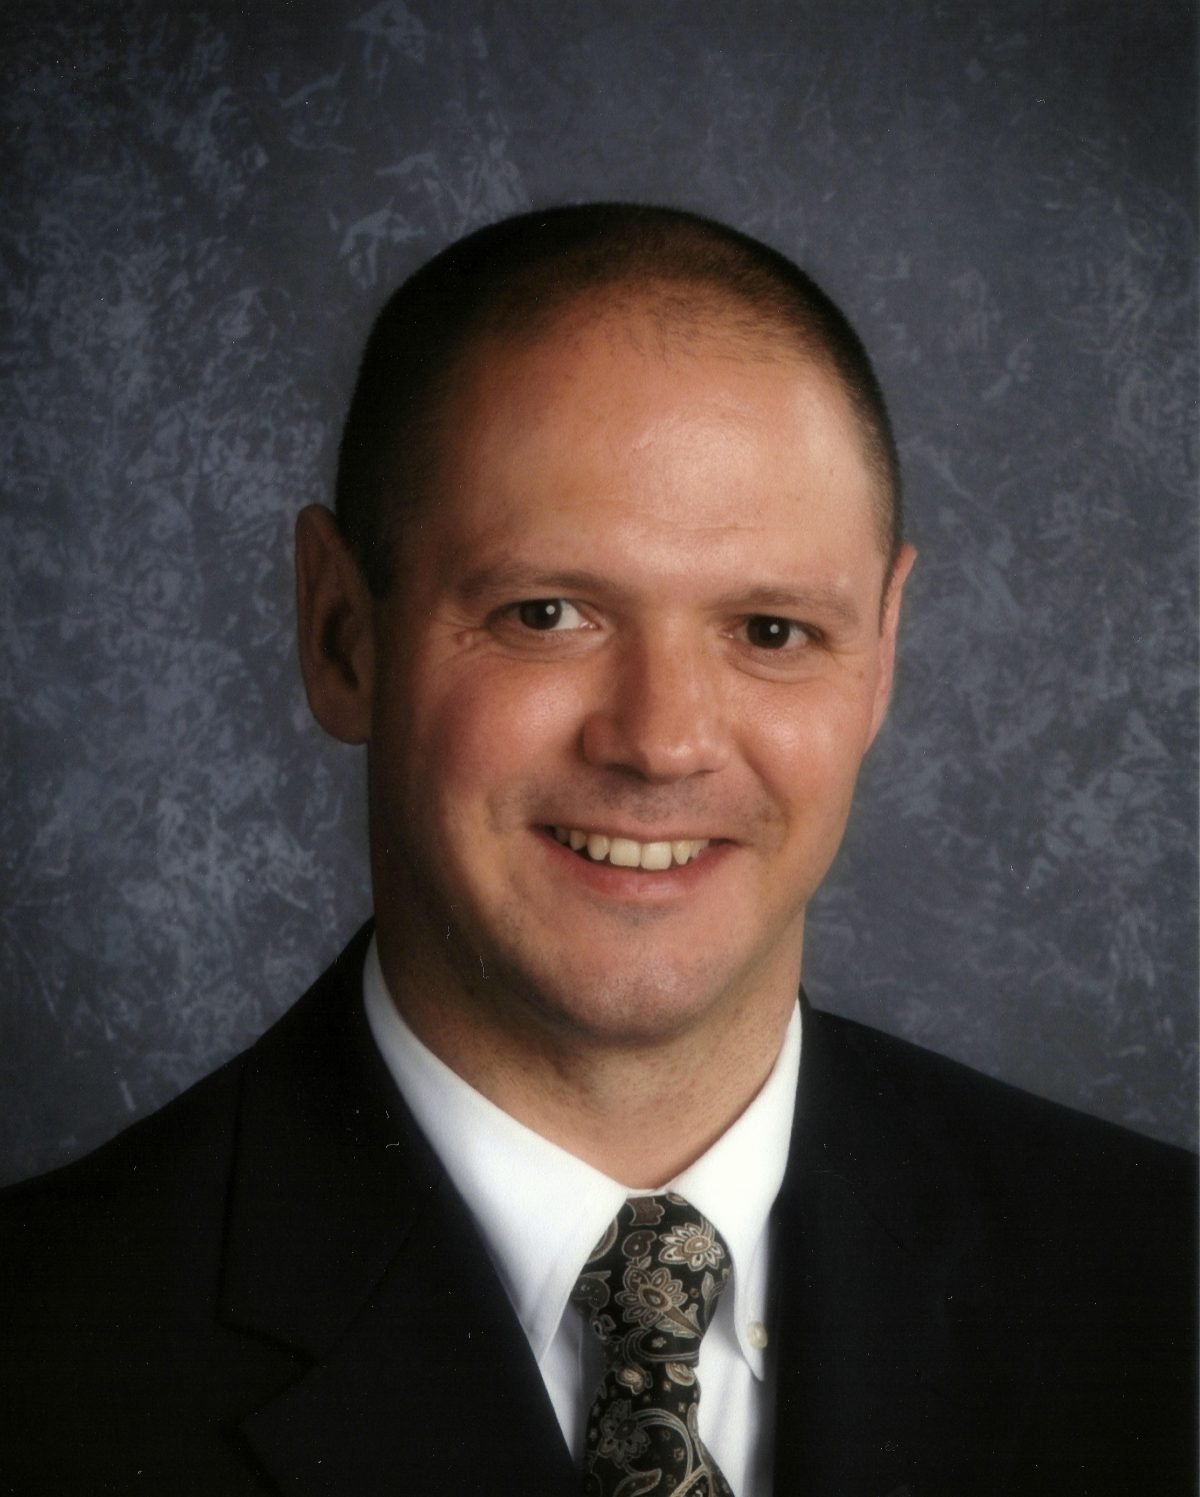 Jon Balsbaugh Appointed Next President of Trinity Schools